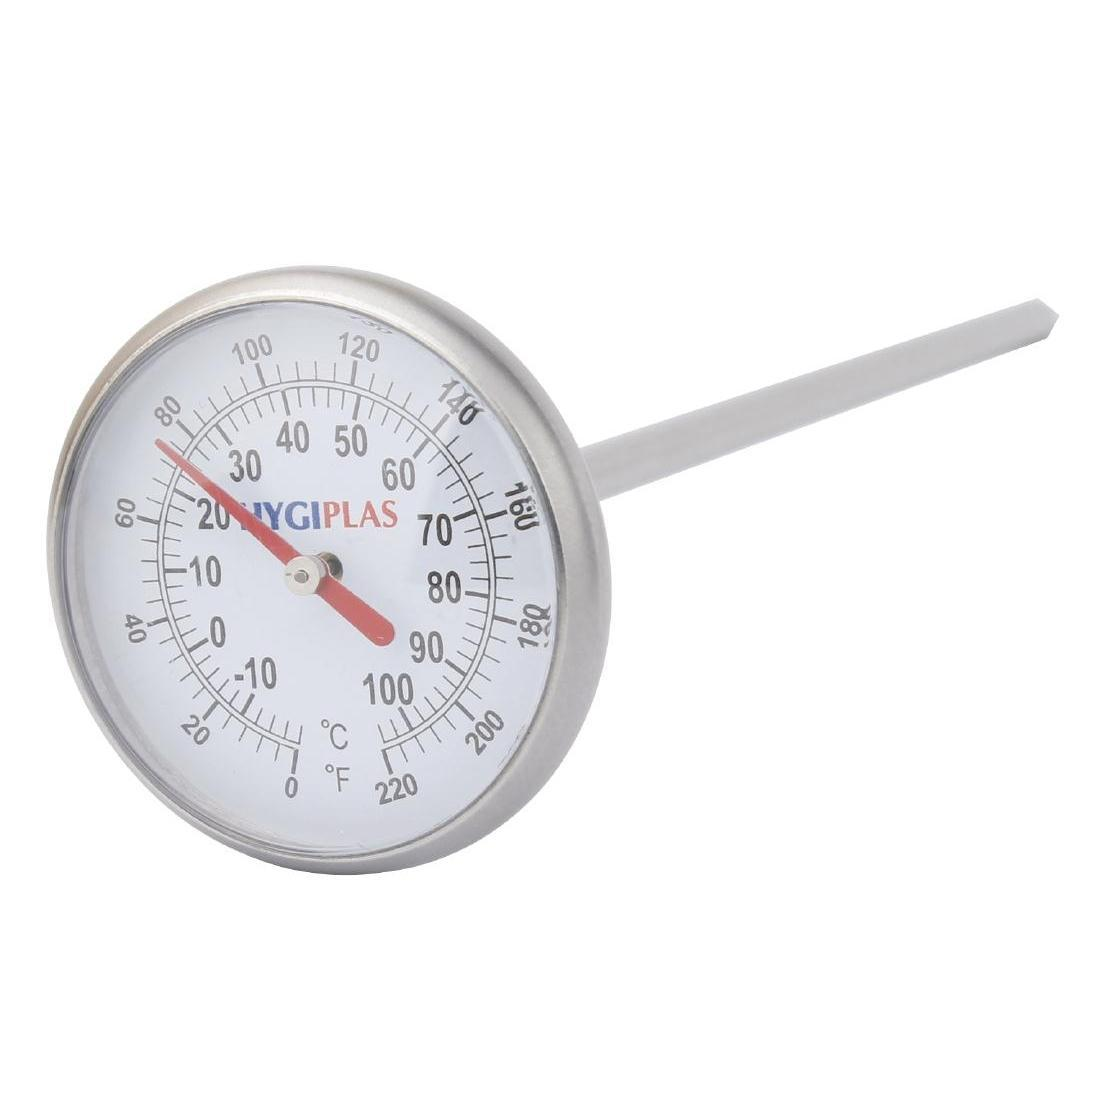 Hygiplas Pocket Thermometer With Dial